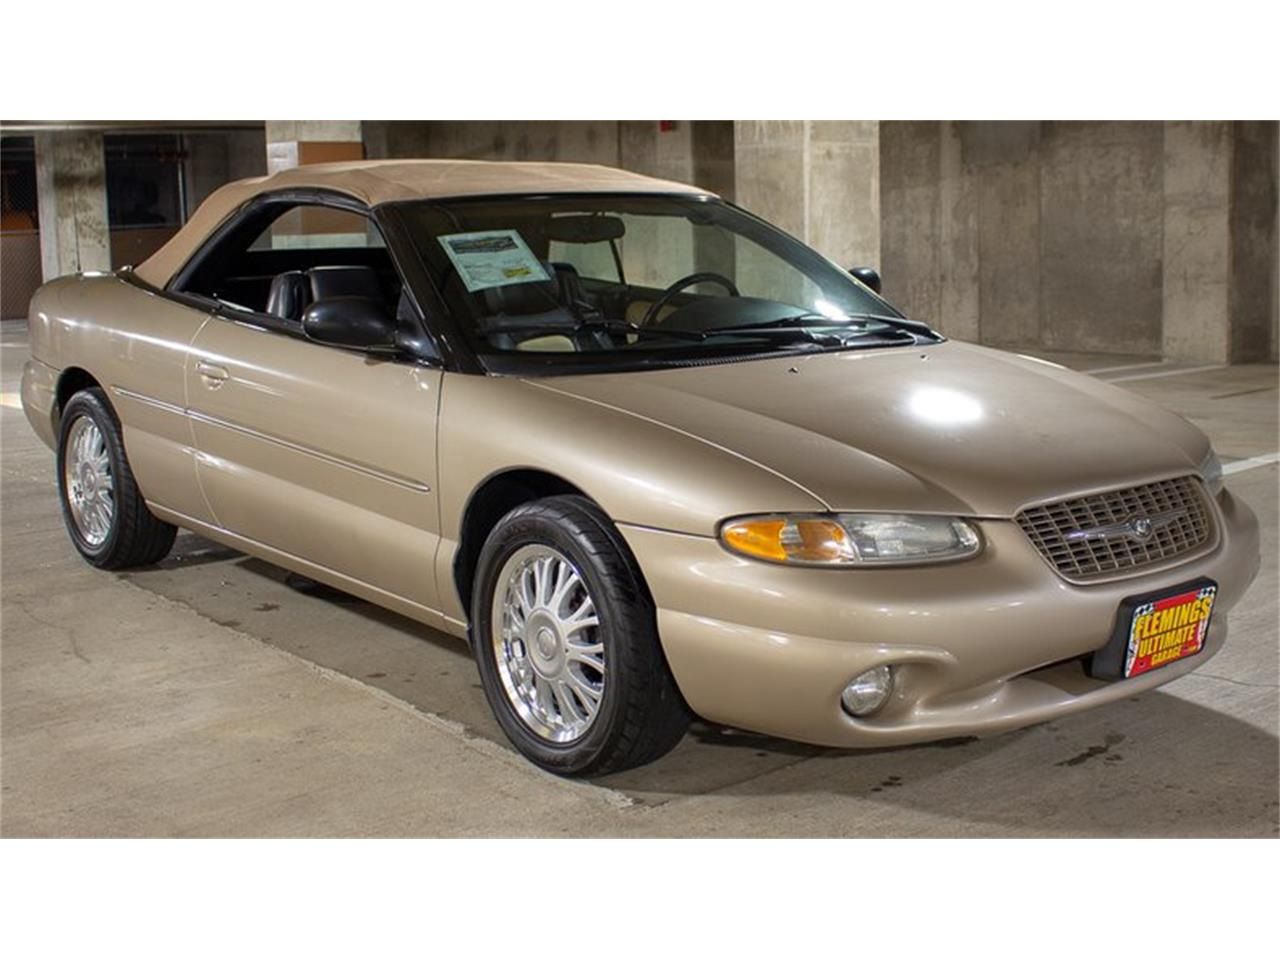 Large Picture of '98 Sebring located in Maryland - $4,290.00 Offered by Flemings Ultimate Garage - PTML